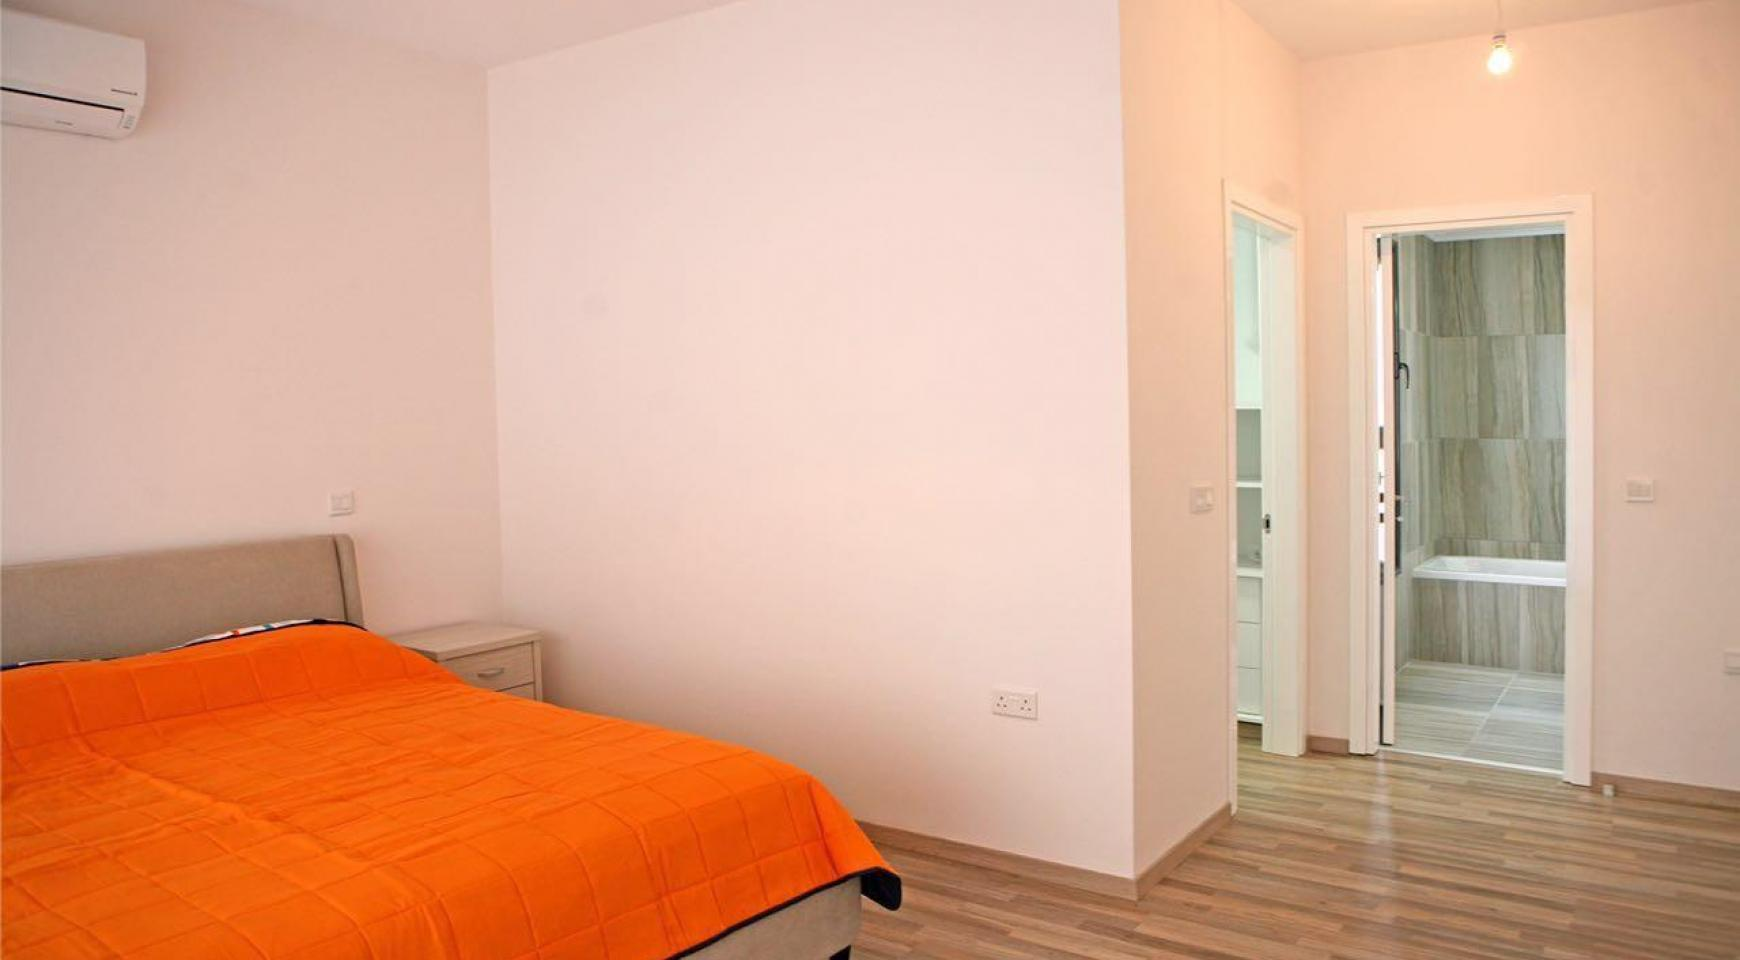 New Contemporary 3 Bedroom House in Central Location - 13